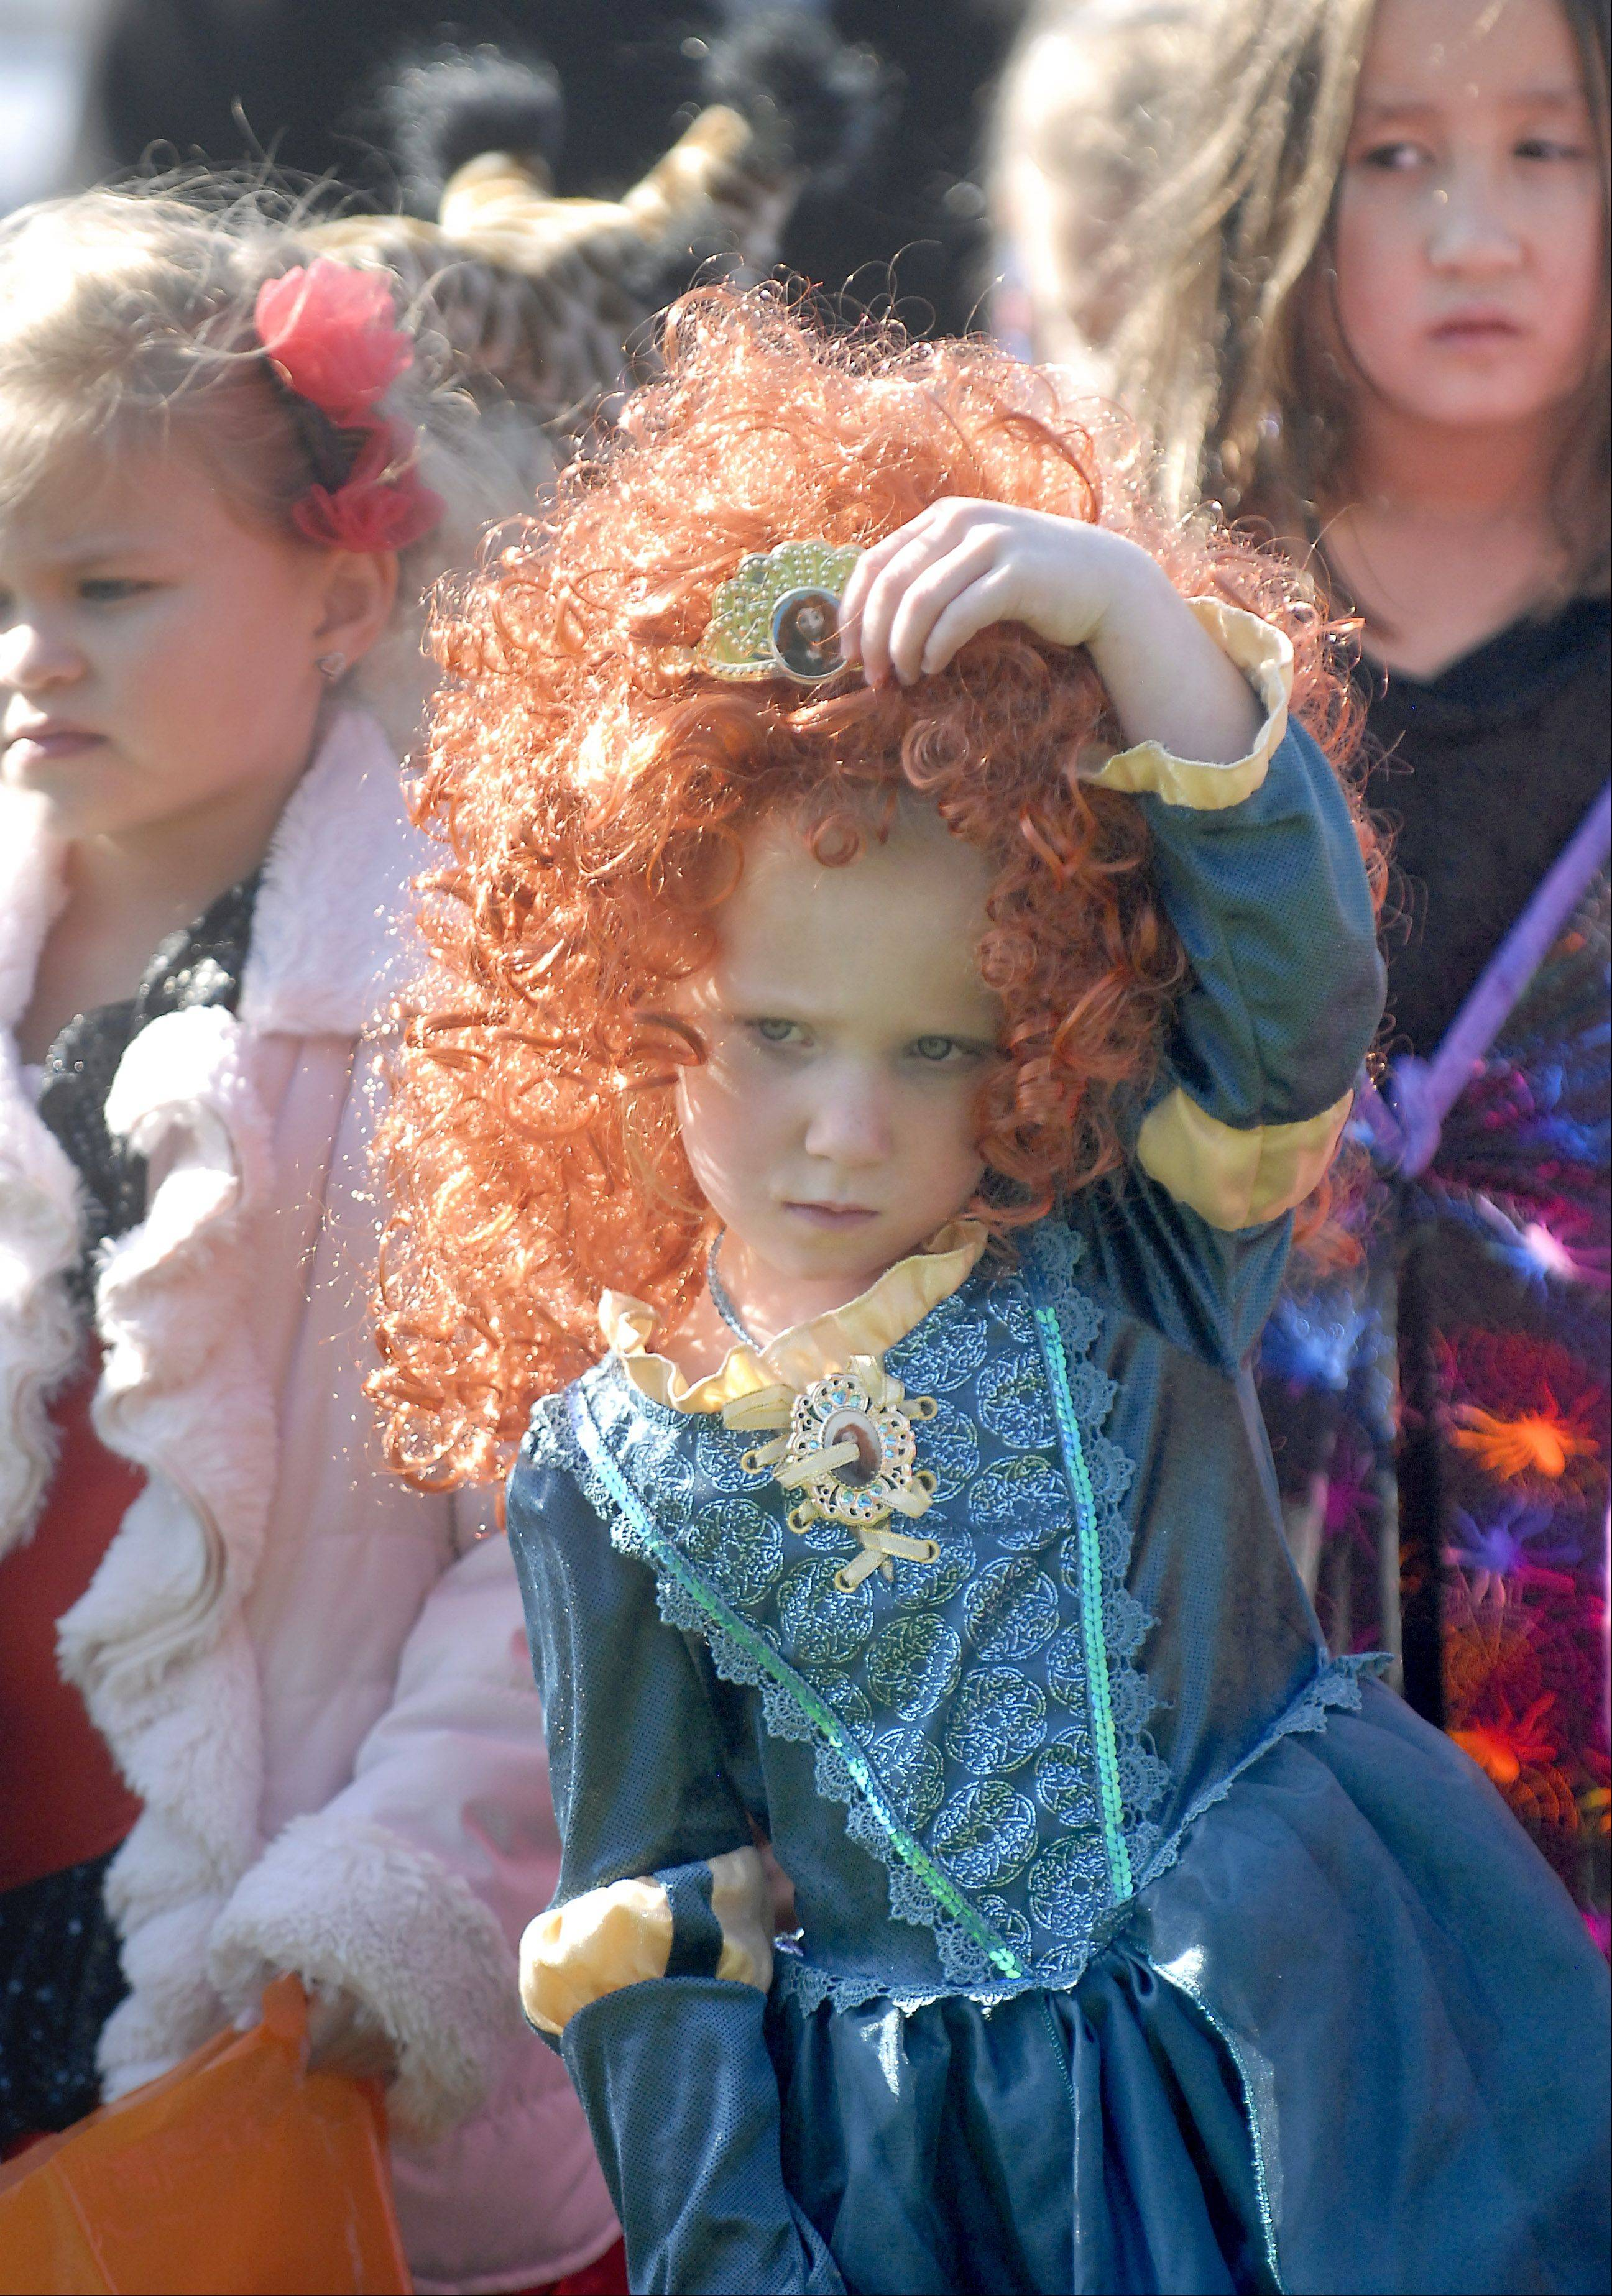 Cate Costello, 4, of Geneva, takes off her wig so it won't slow her down during the goodie-filled plastic egg hunt at Geneva Park District's Halloween Hayday at the Persinger Recreation Center on Saturday, October 27. Her costume is Merida from the Brave cartoon movie.